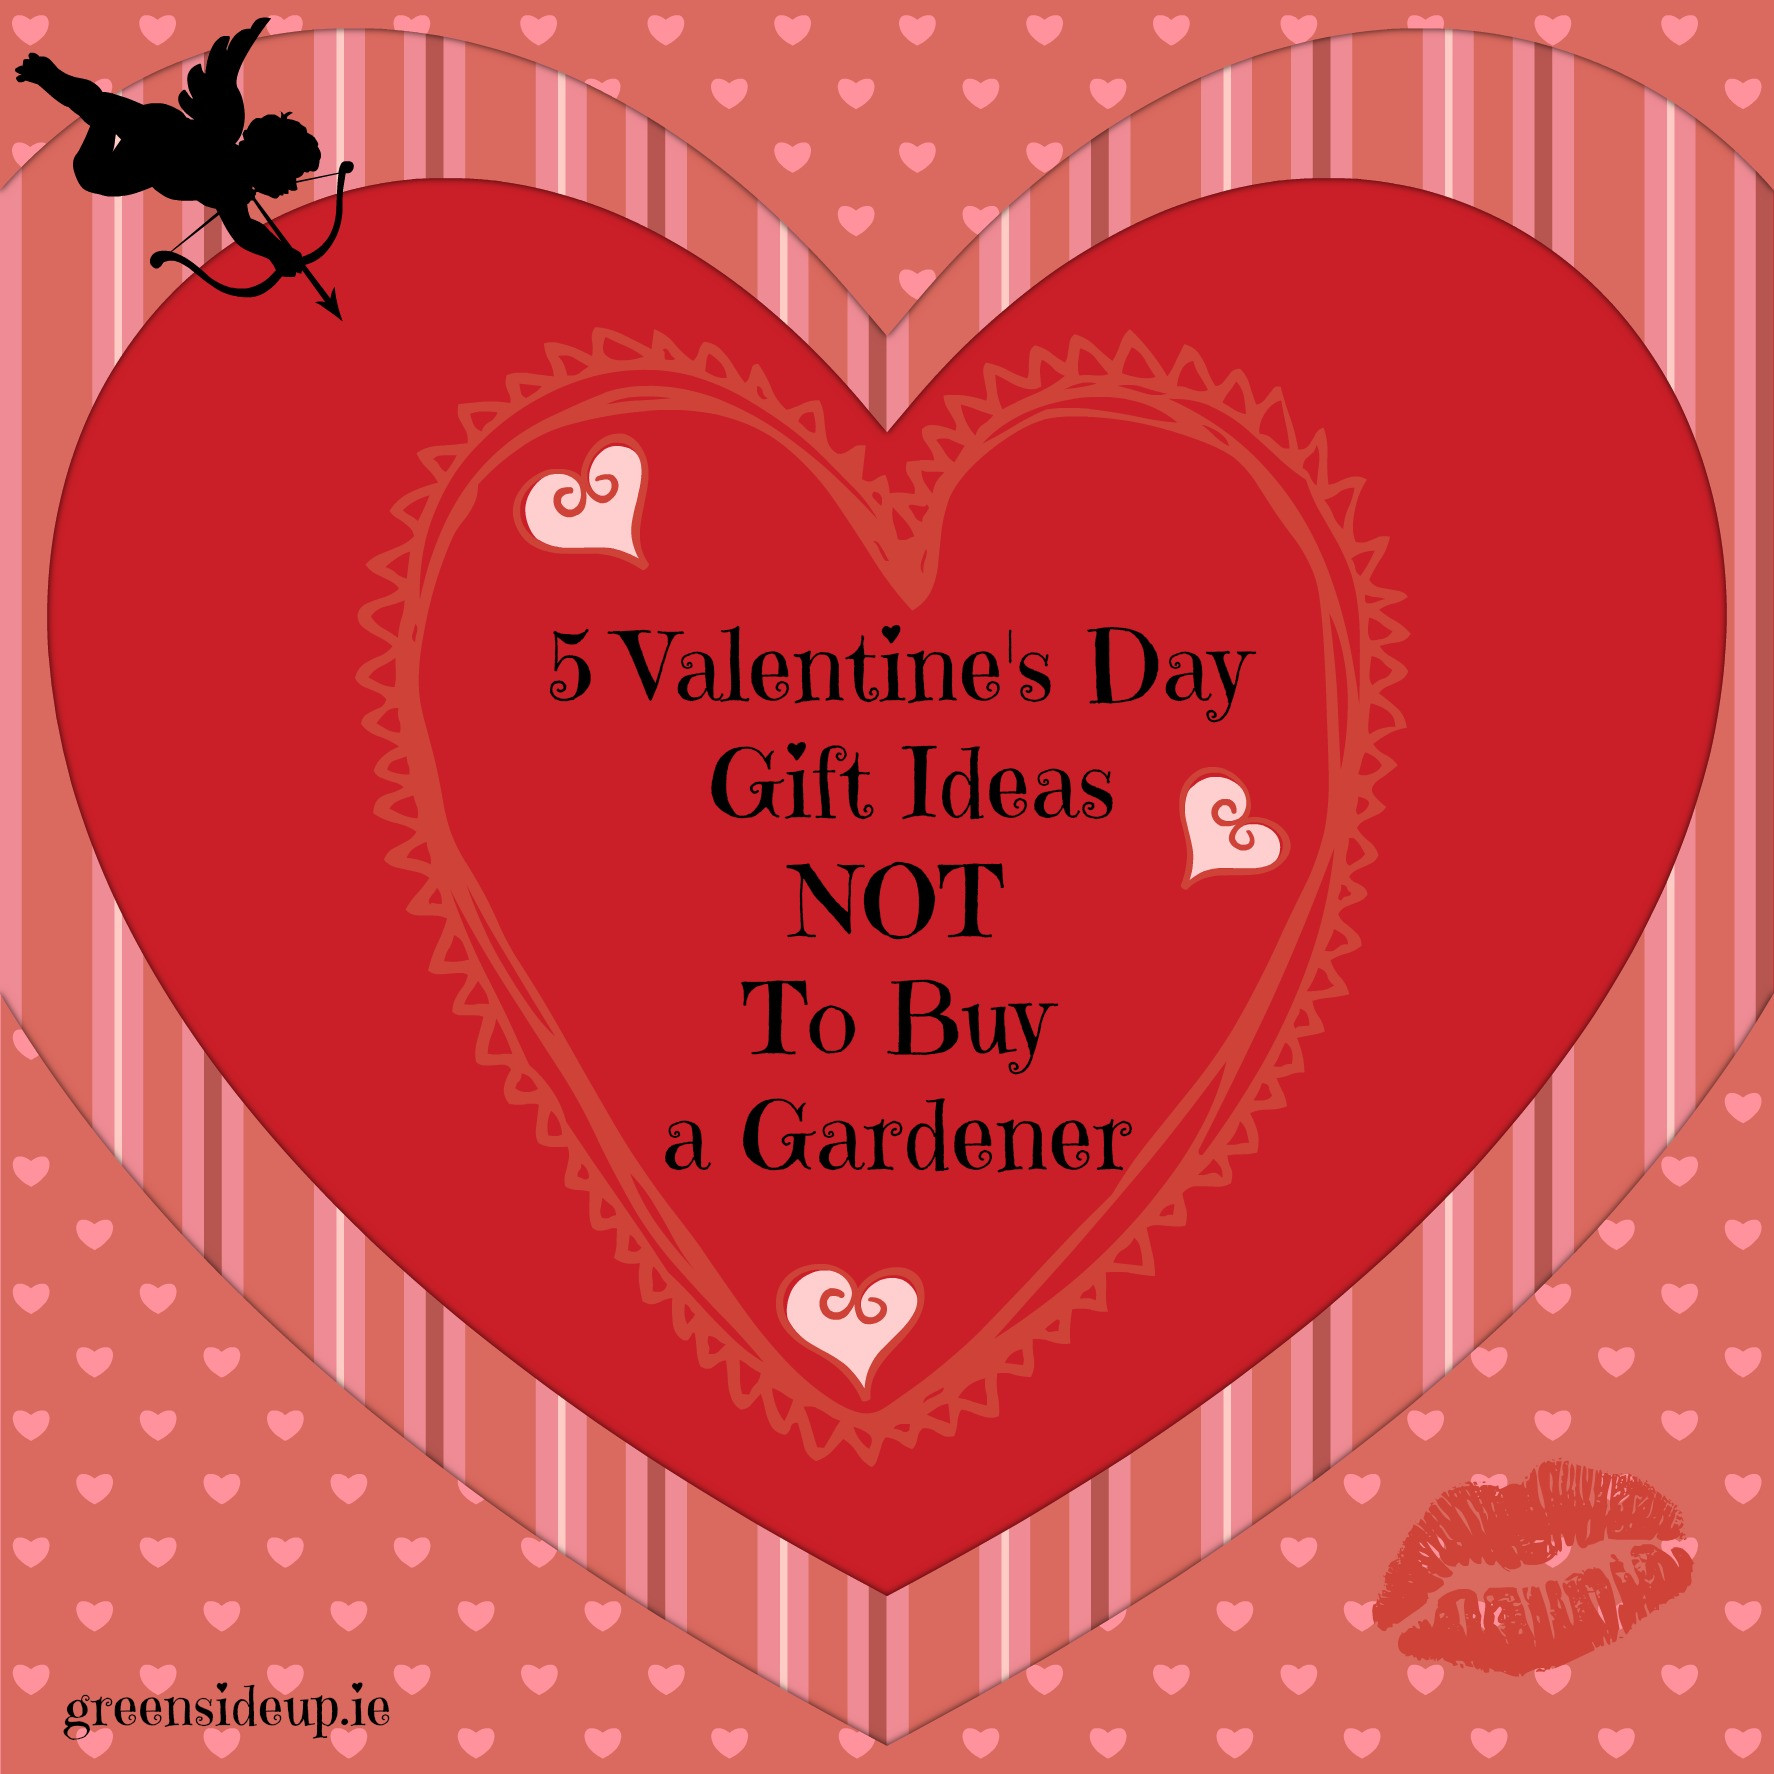 Valentine'S Day Creative Gift Ideas  5 Valentines Day Gift Ideas NOT To By A GardenerGreenside Up